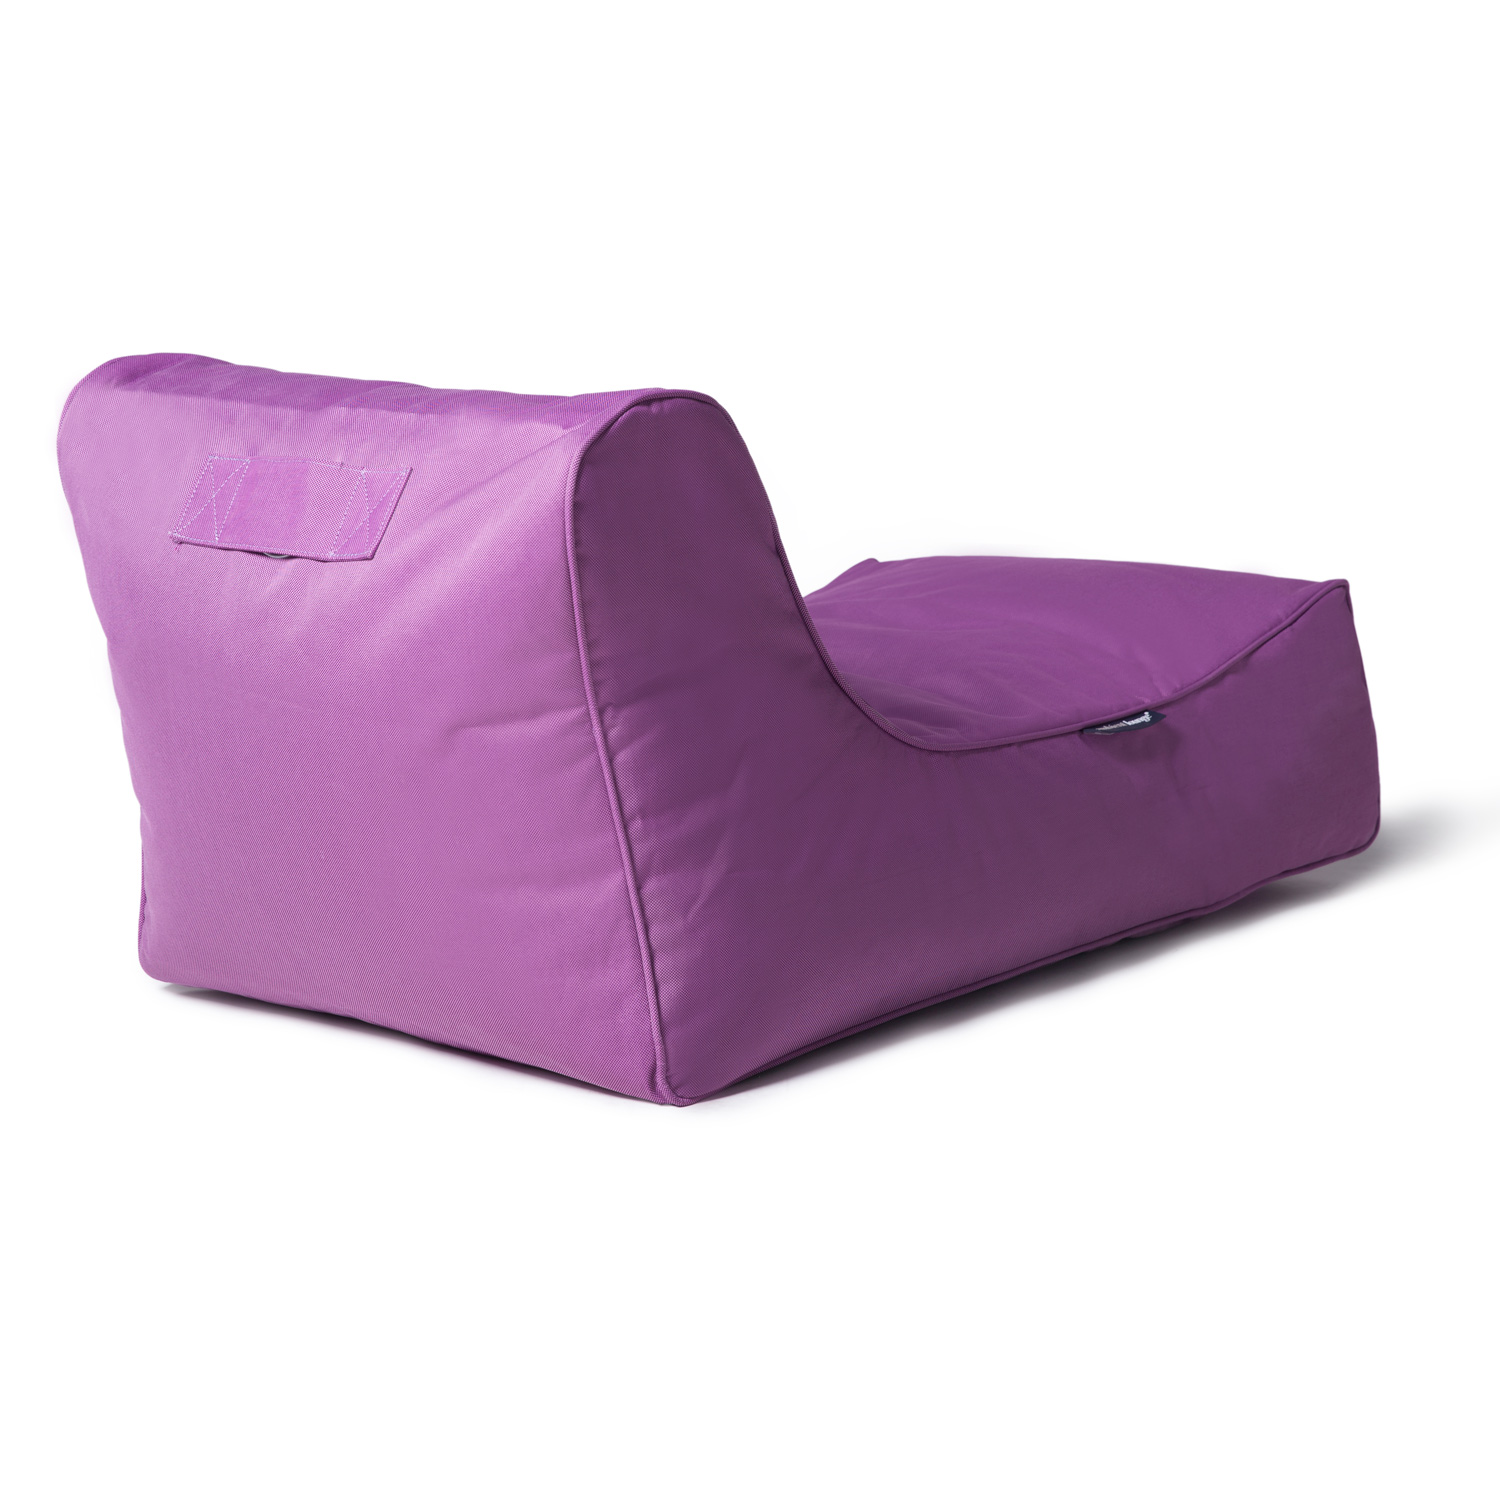 Outdoor Bean Bags Studio Lounger Acai Merlot Bean